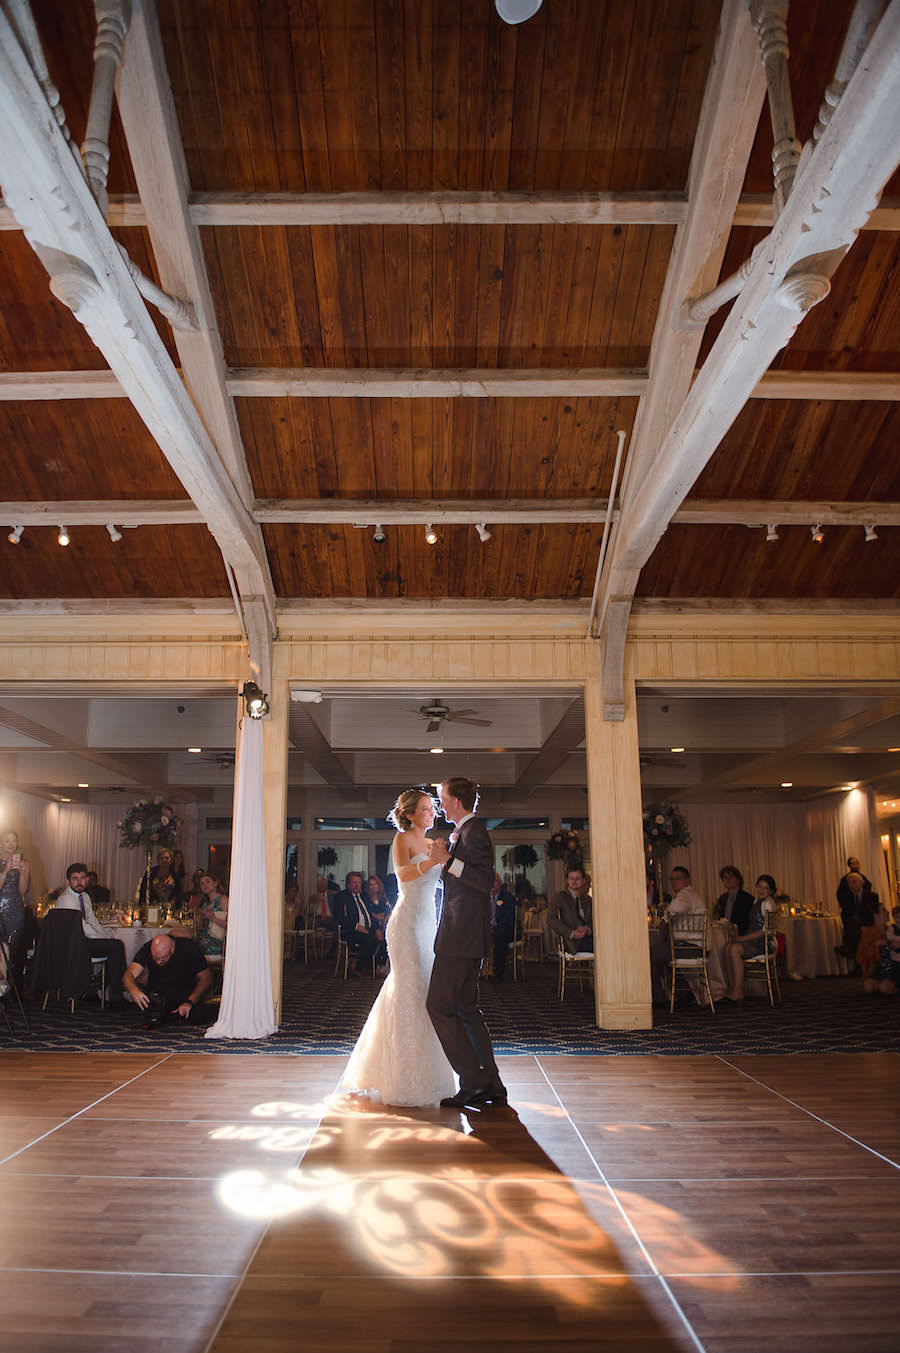 Bride and Groom First Dance | Clearwater Beach Wedding Venue Carlouel Yacht Club | Planner Parties a la Carte | Photographer Marc Edwards Photographs